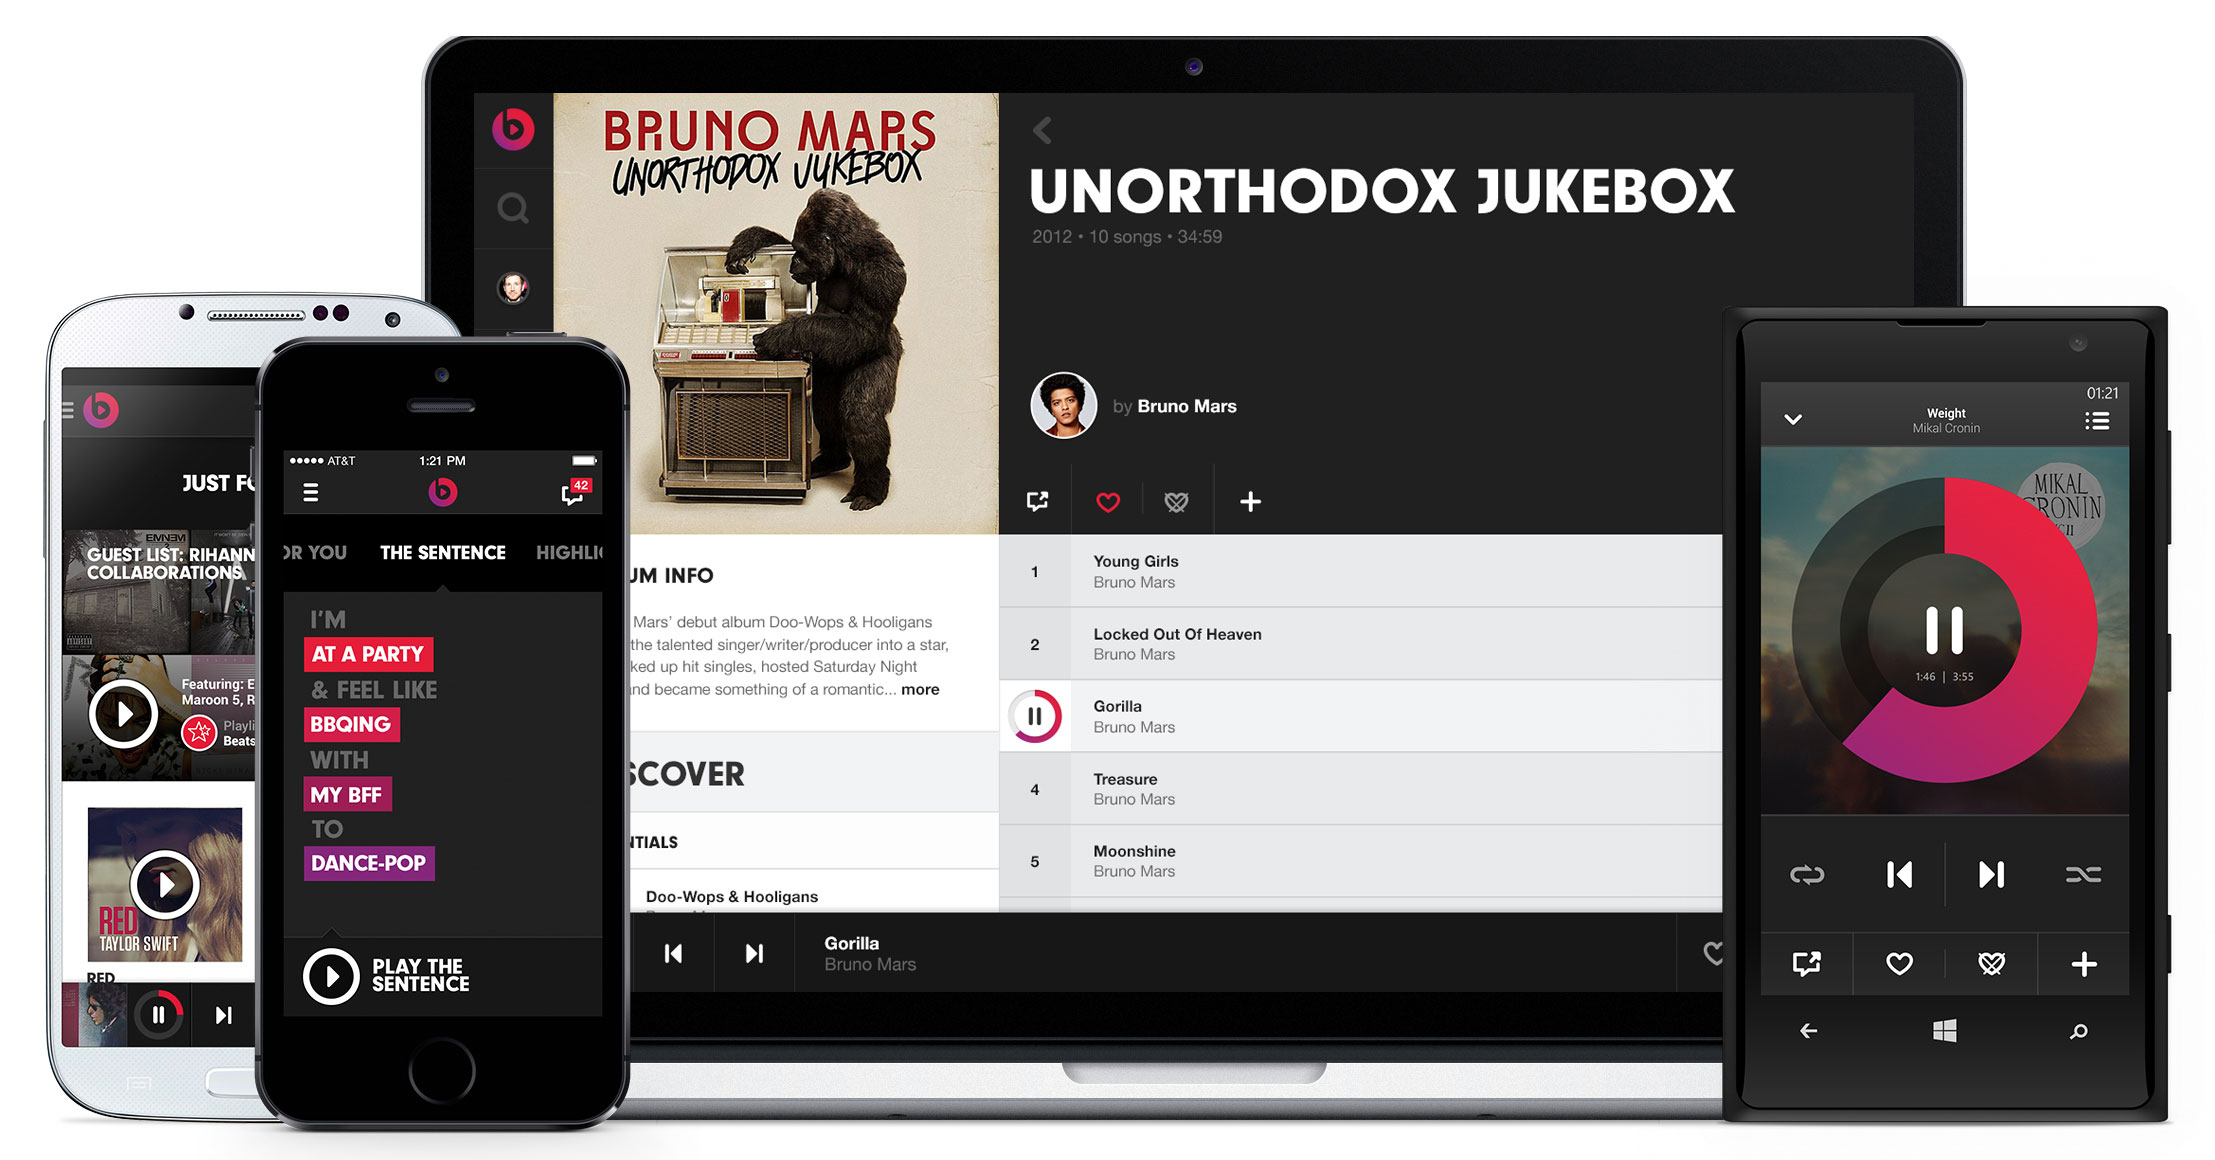 Apple is reportedly planning to unveil the revamped Beats Music streaming service at WWDC in June